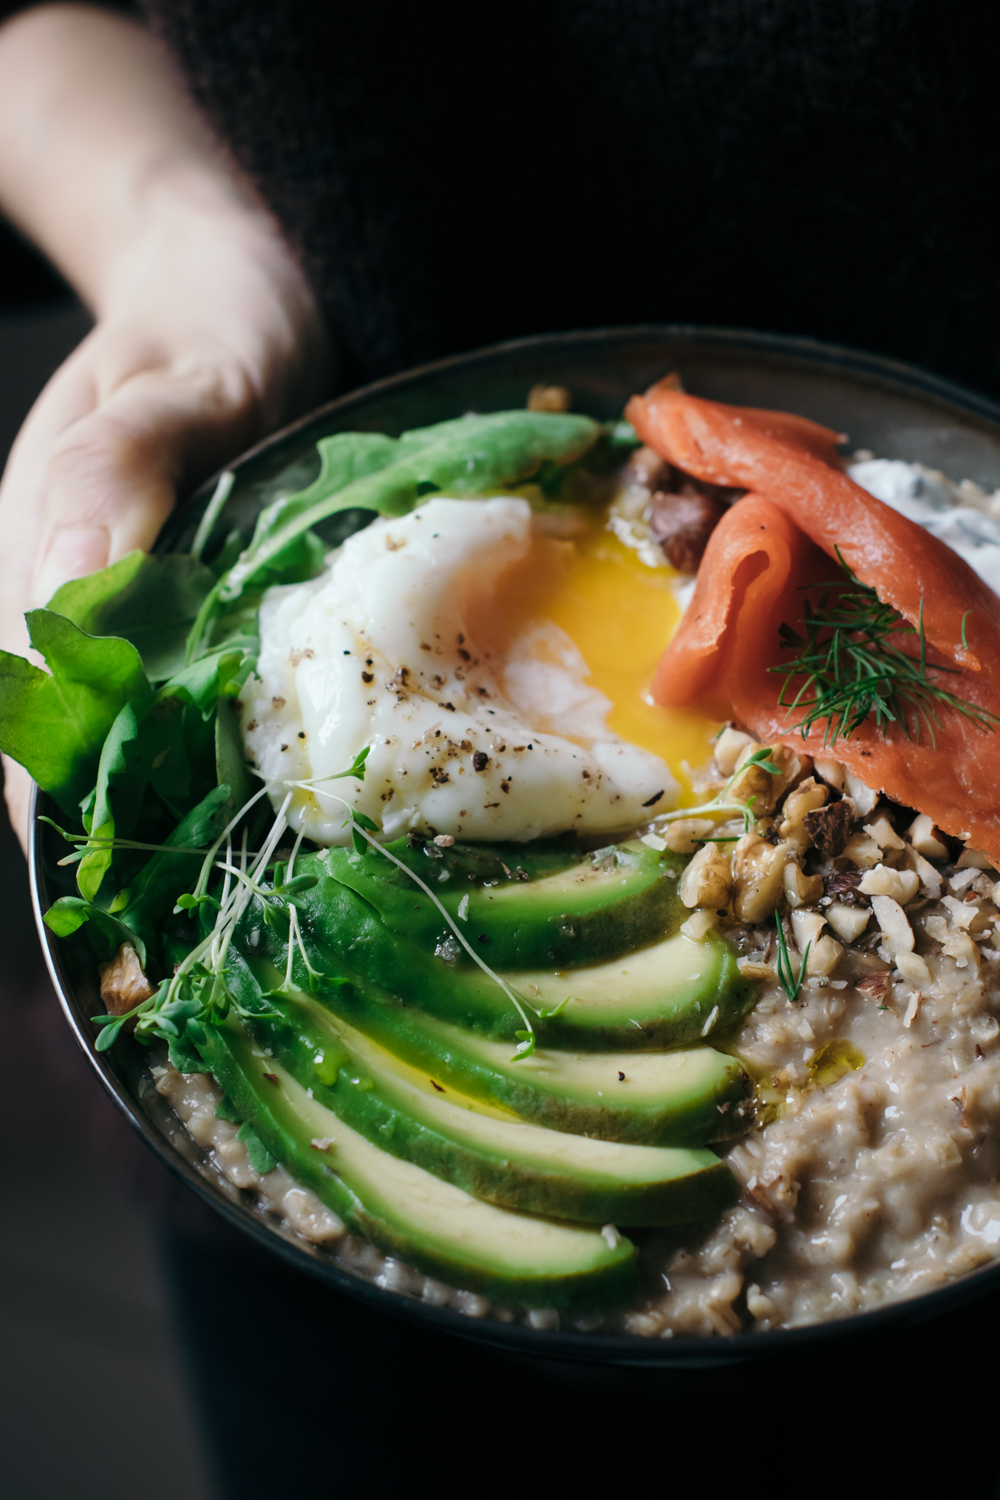 Savory Porridge with Miso, Salmon & Avocado